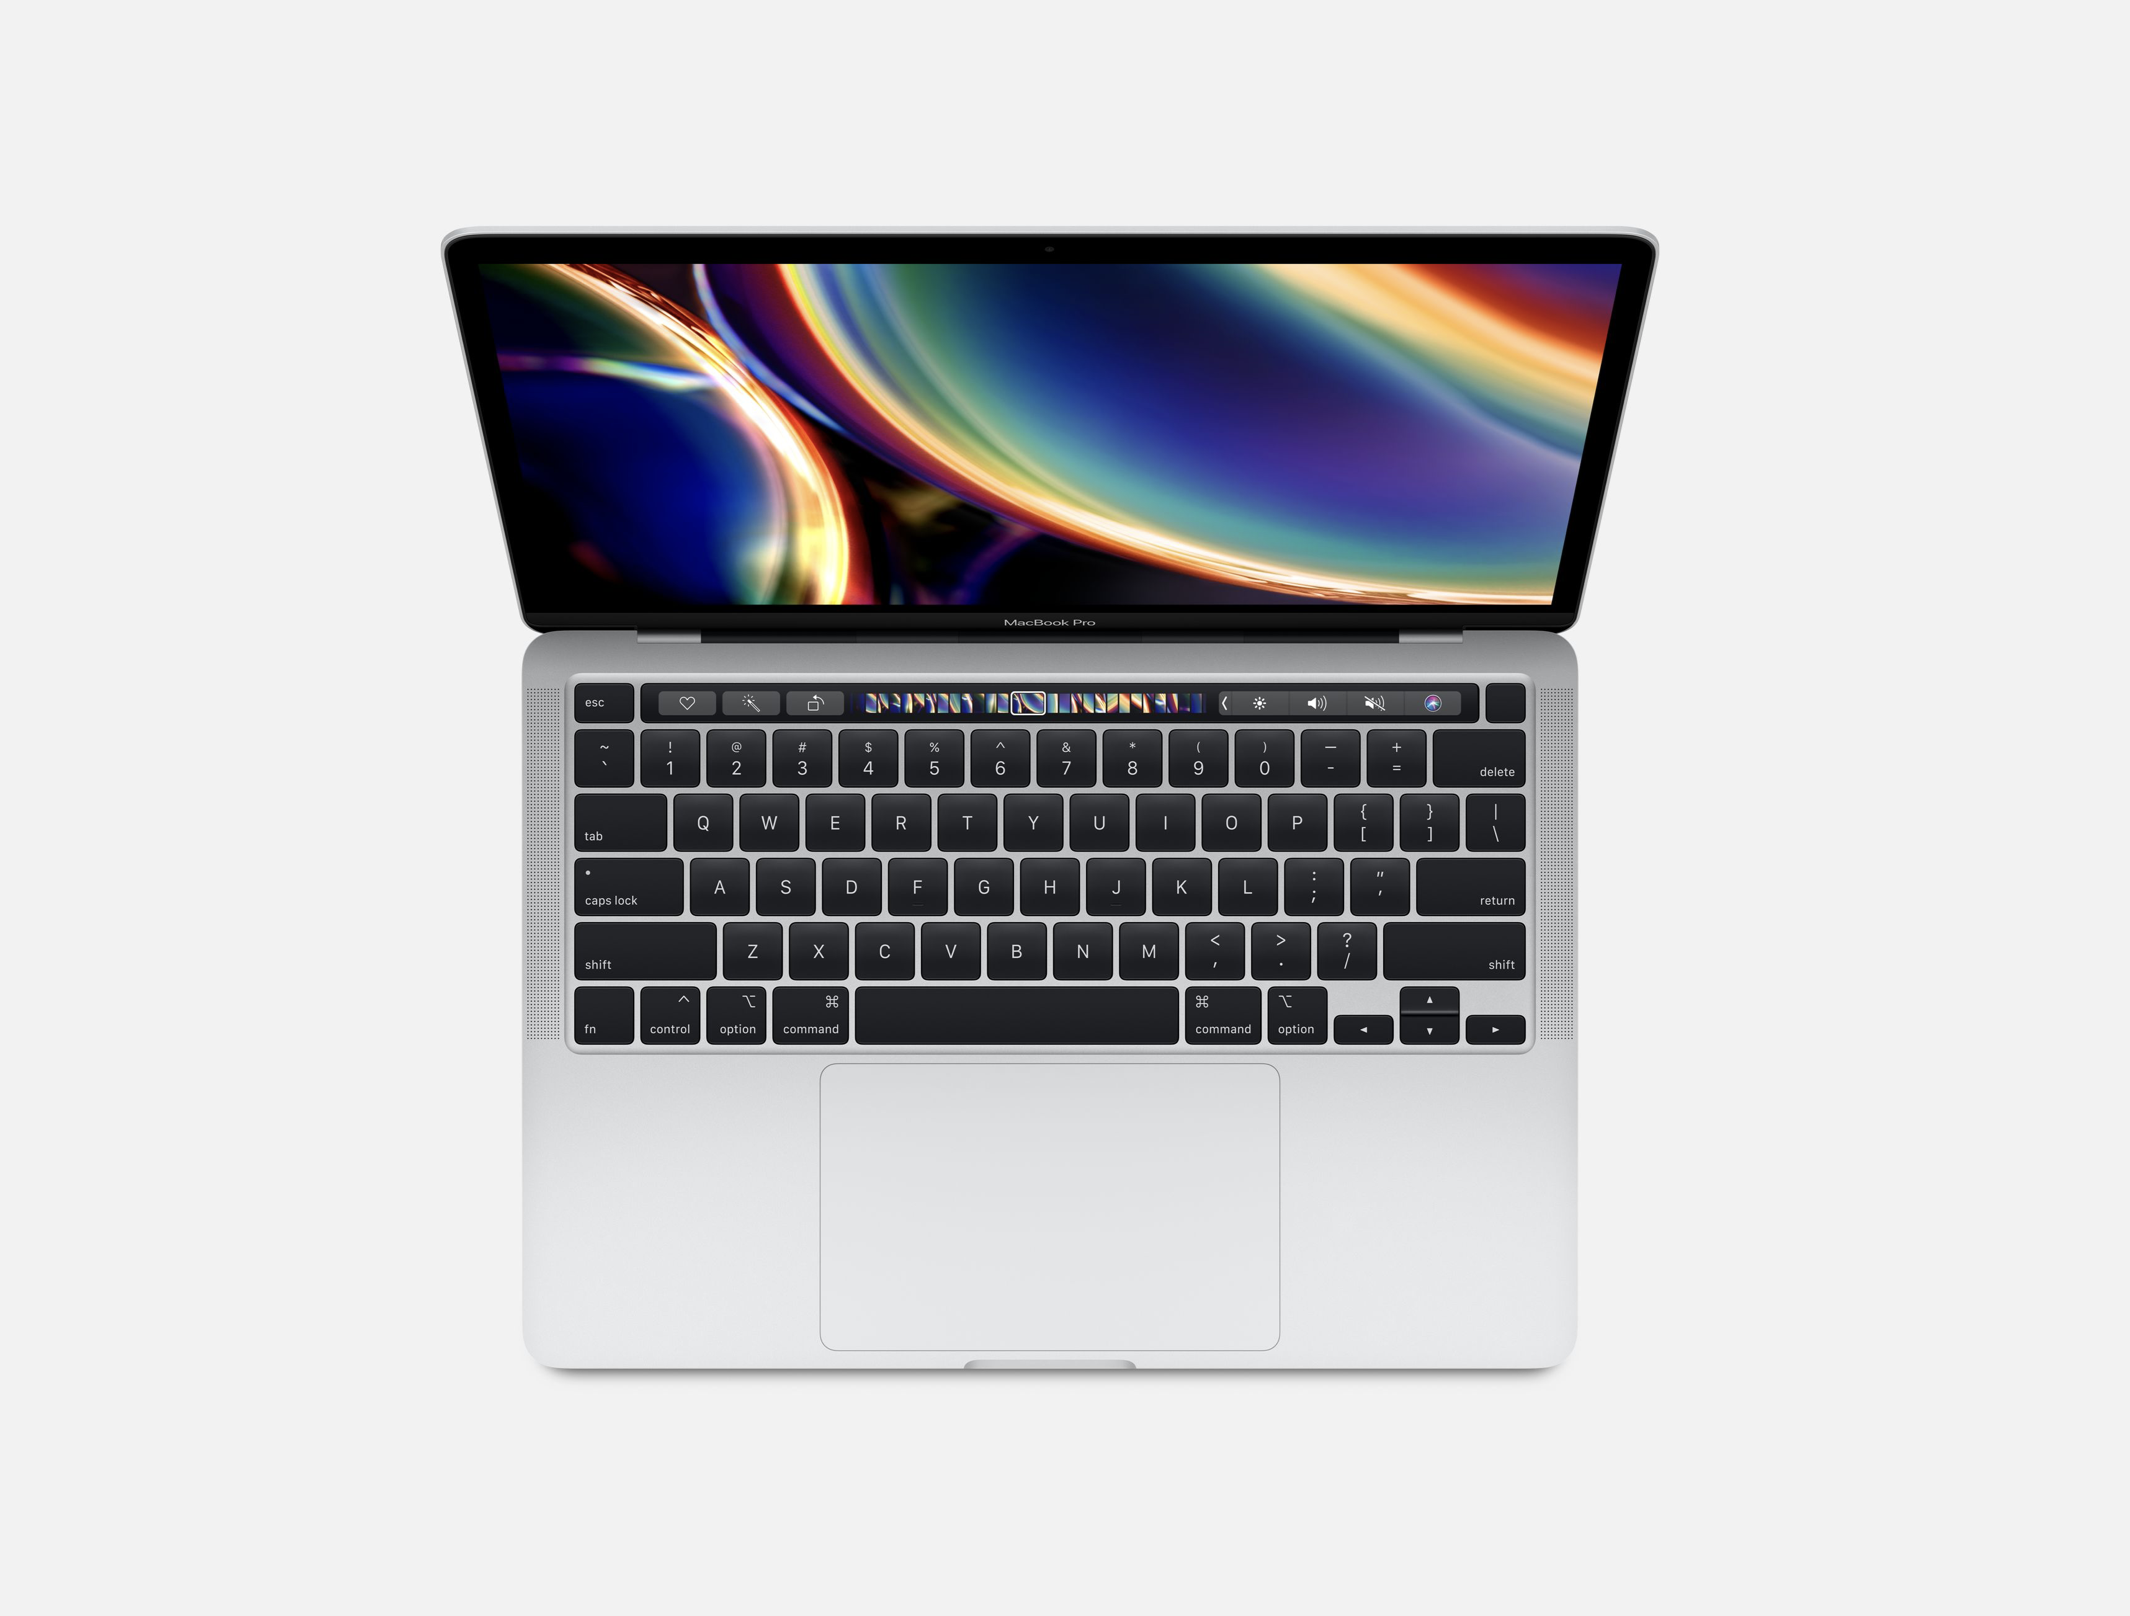 Graduation Bundle MacBook Pro 2.0GHz (Silver) 1TB with AppleCare+ and FREE HD